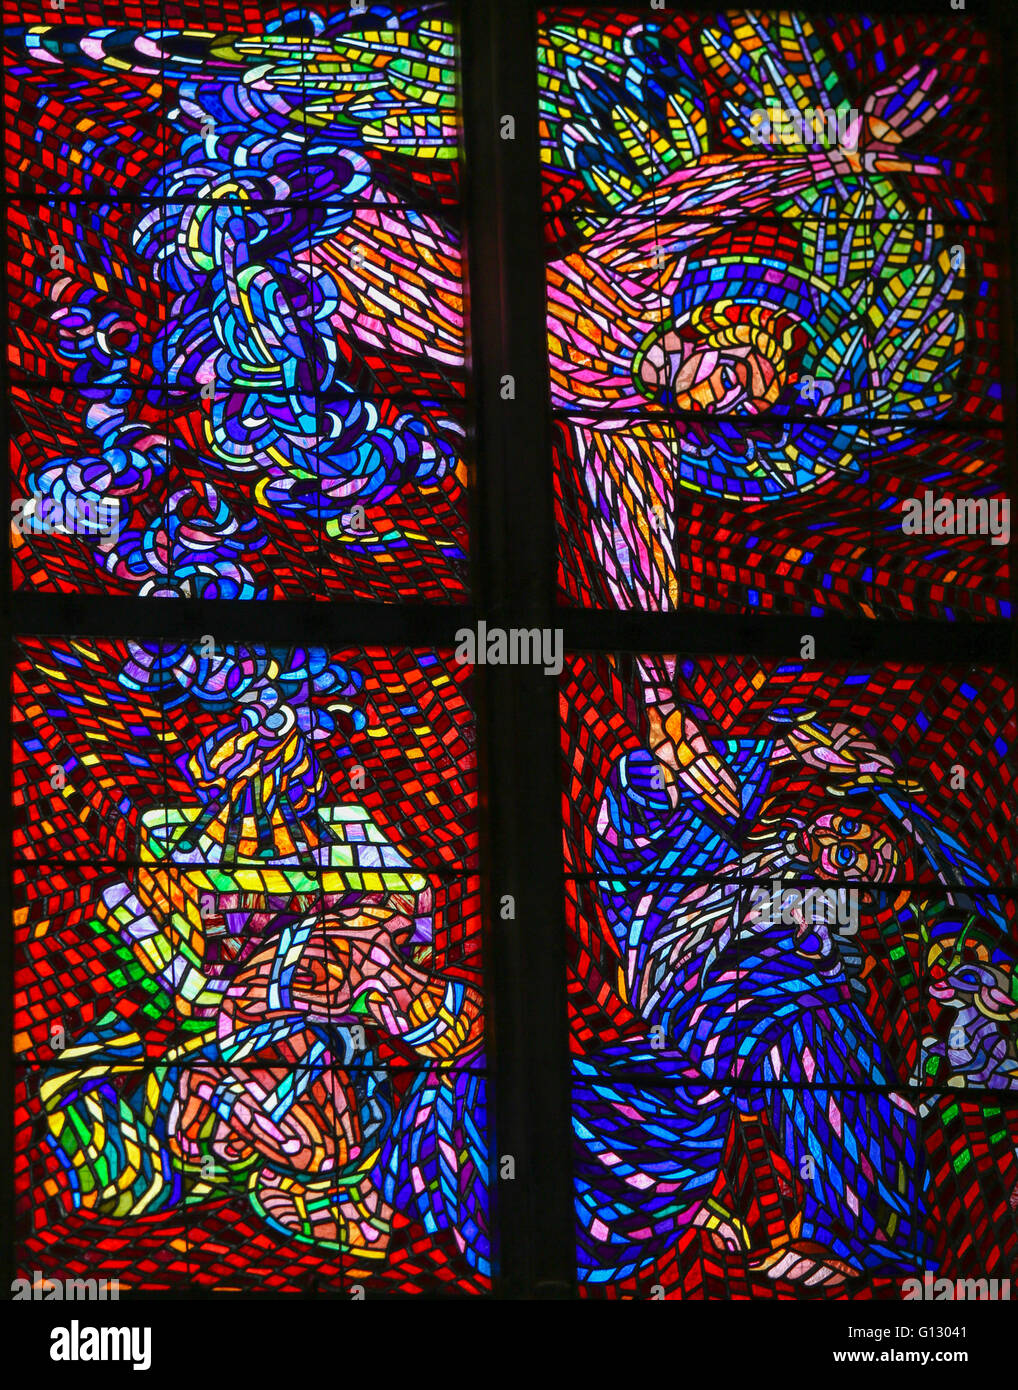 Stained Glass window in St. Vitus Cathedral, Prague, depicting Abraham and the Binding of Isaac on Moriah. - Stock Image